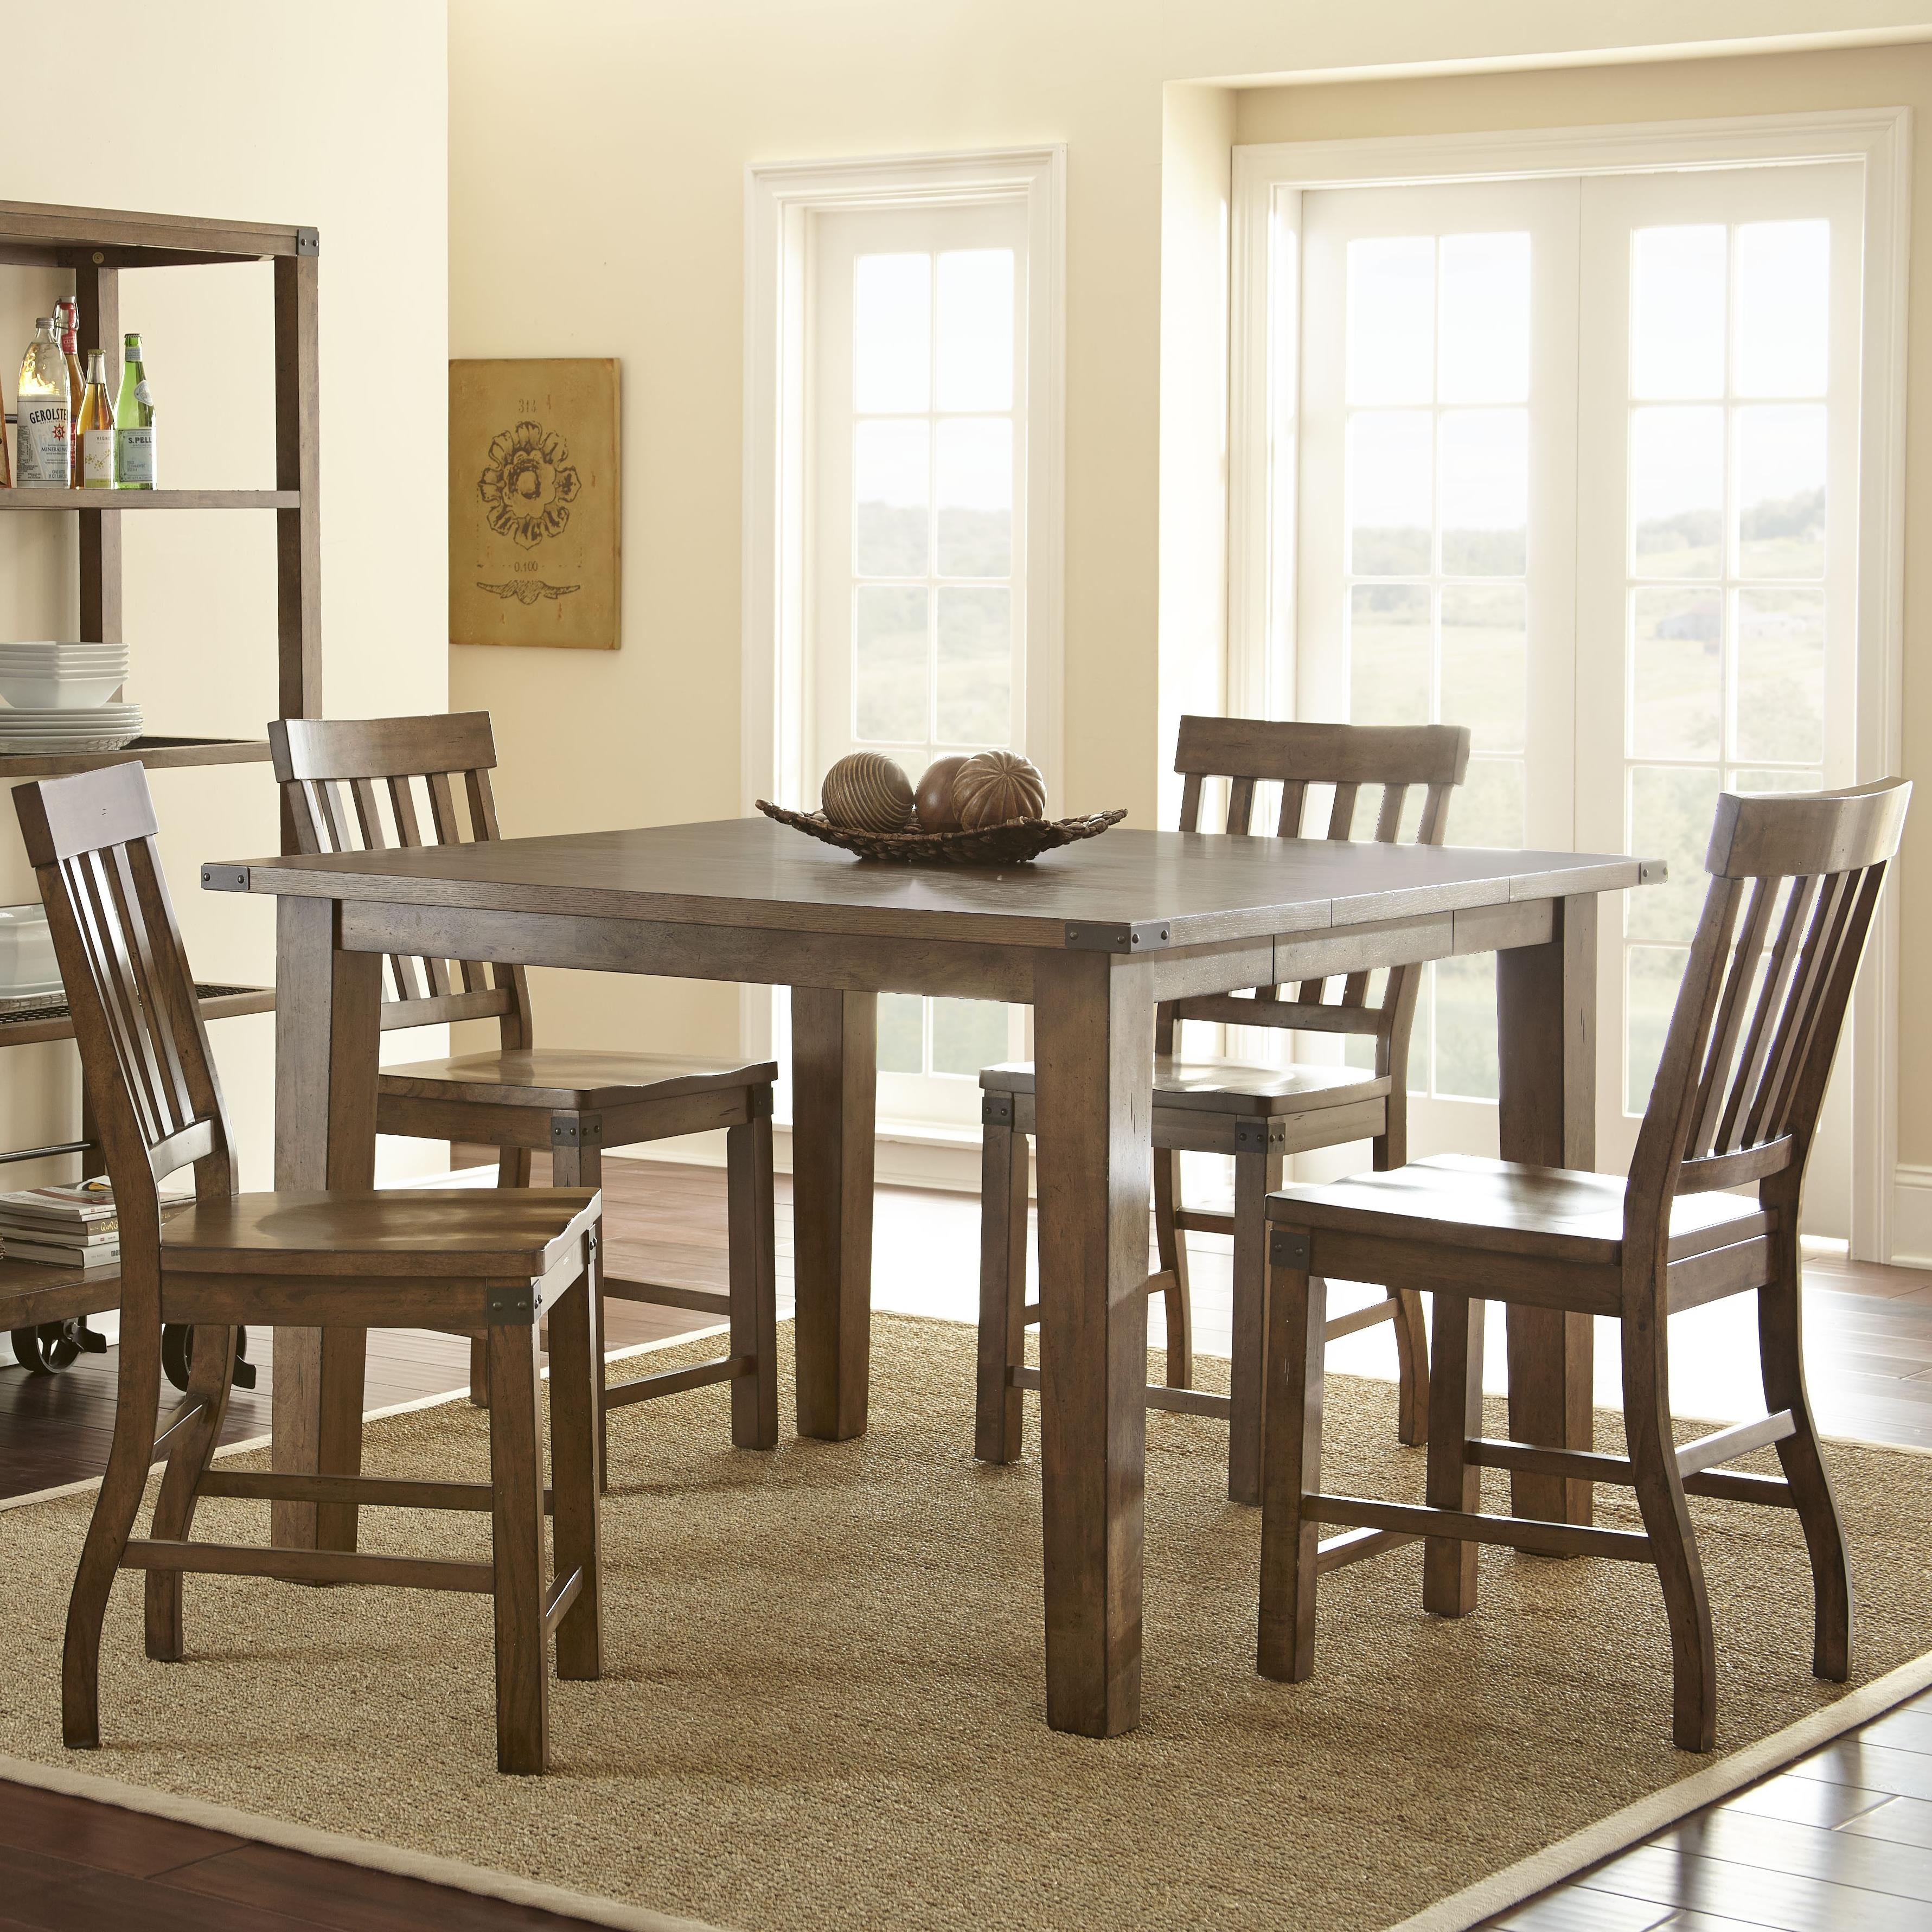 Steve Silver Hailee 5 Piece Counter Dining Set - Item Number: HA700PT+4xCC